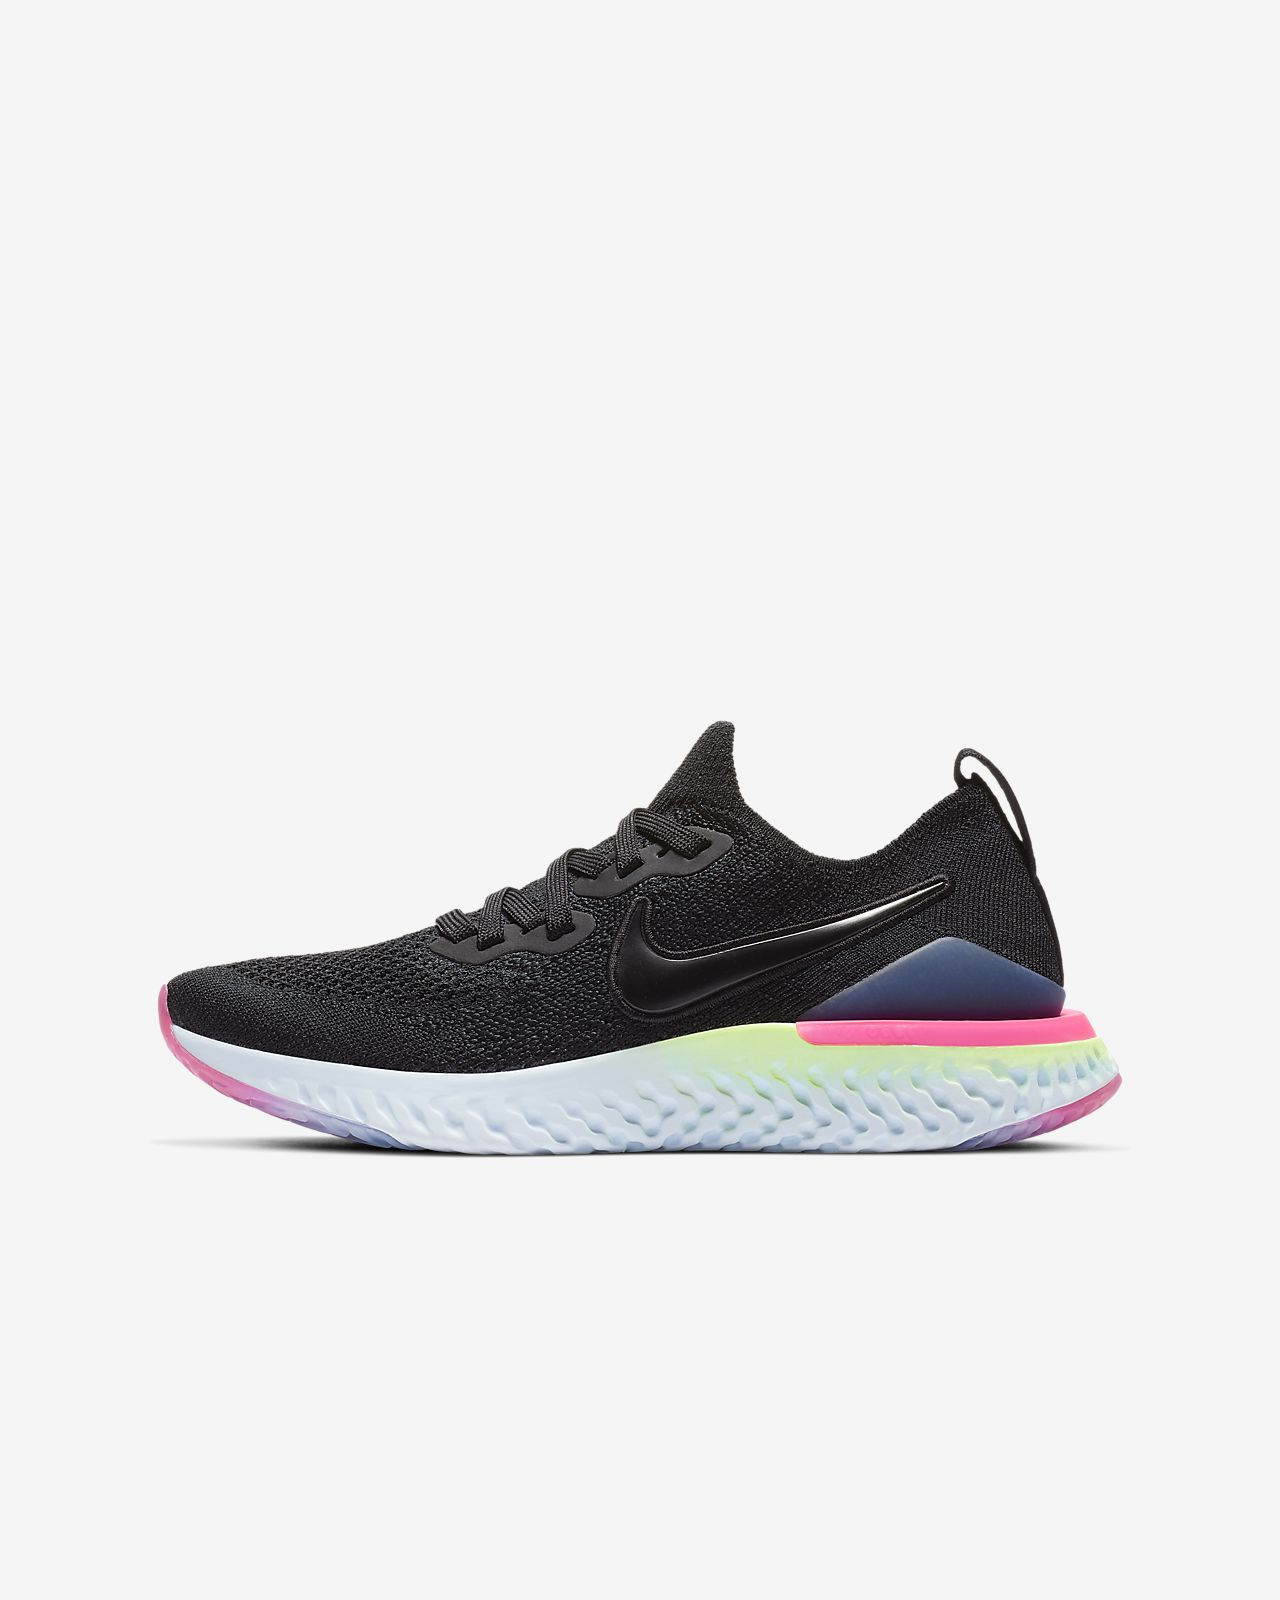 2731a18e2619f Nike Epic React Flyknit 2 Older Kids  Running Shoe. Nike.com ID